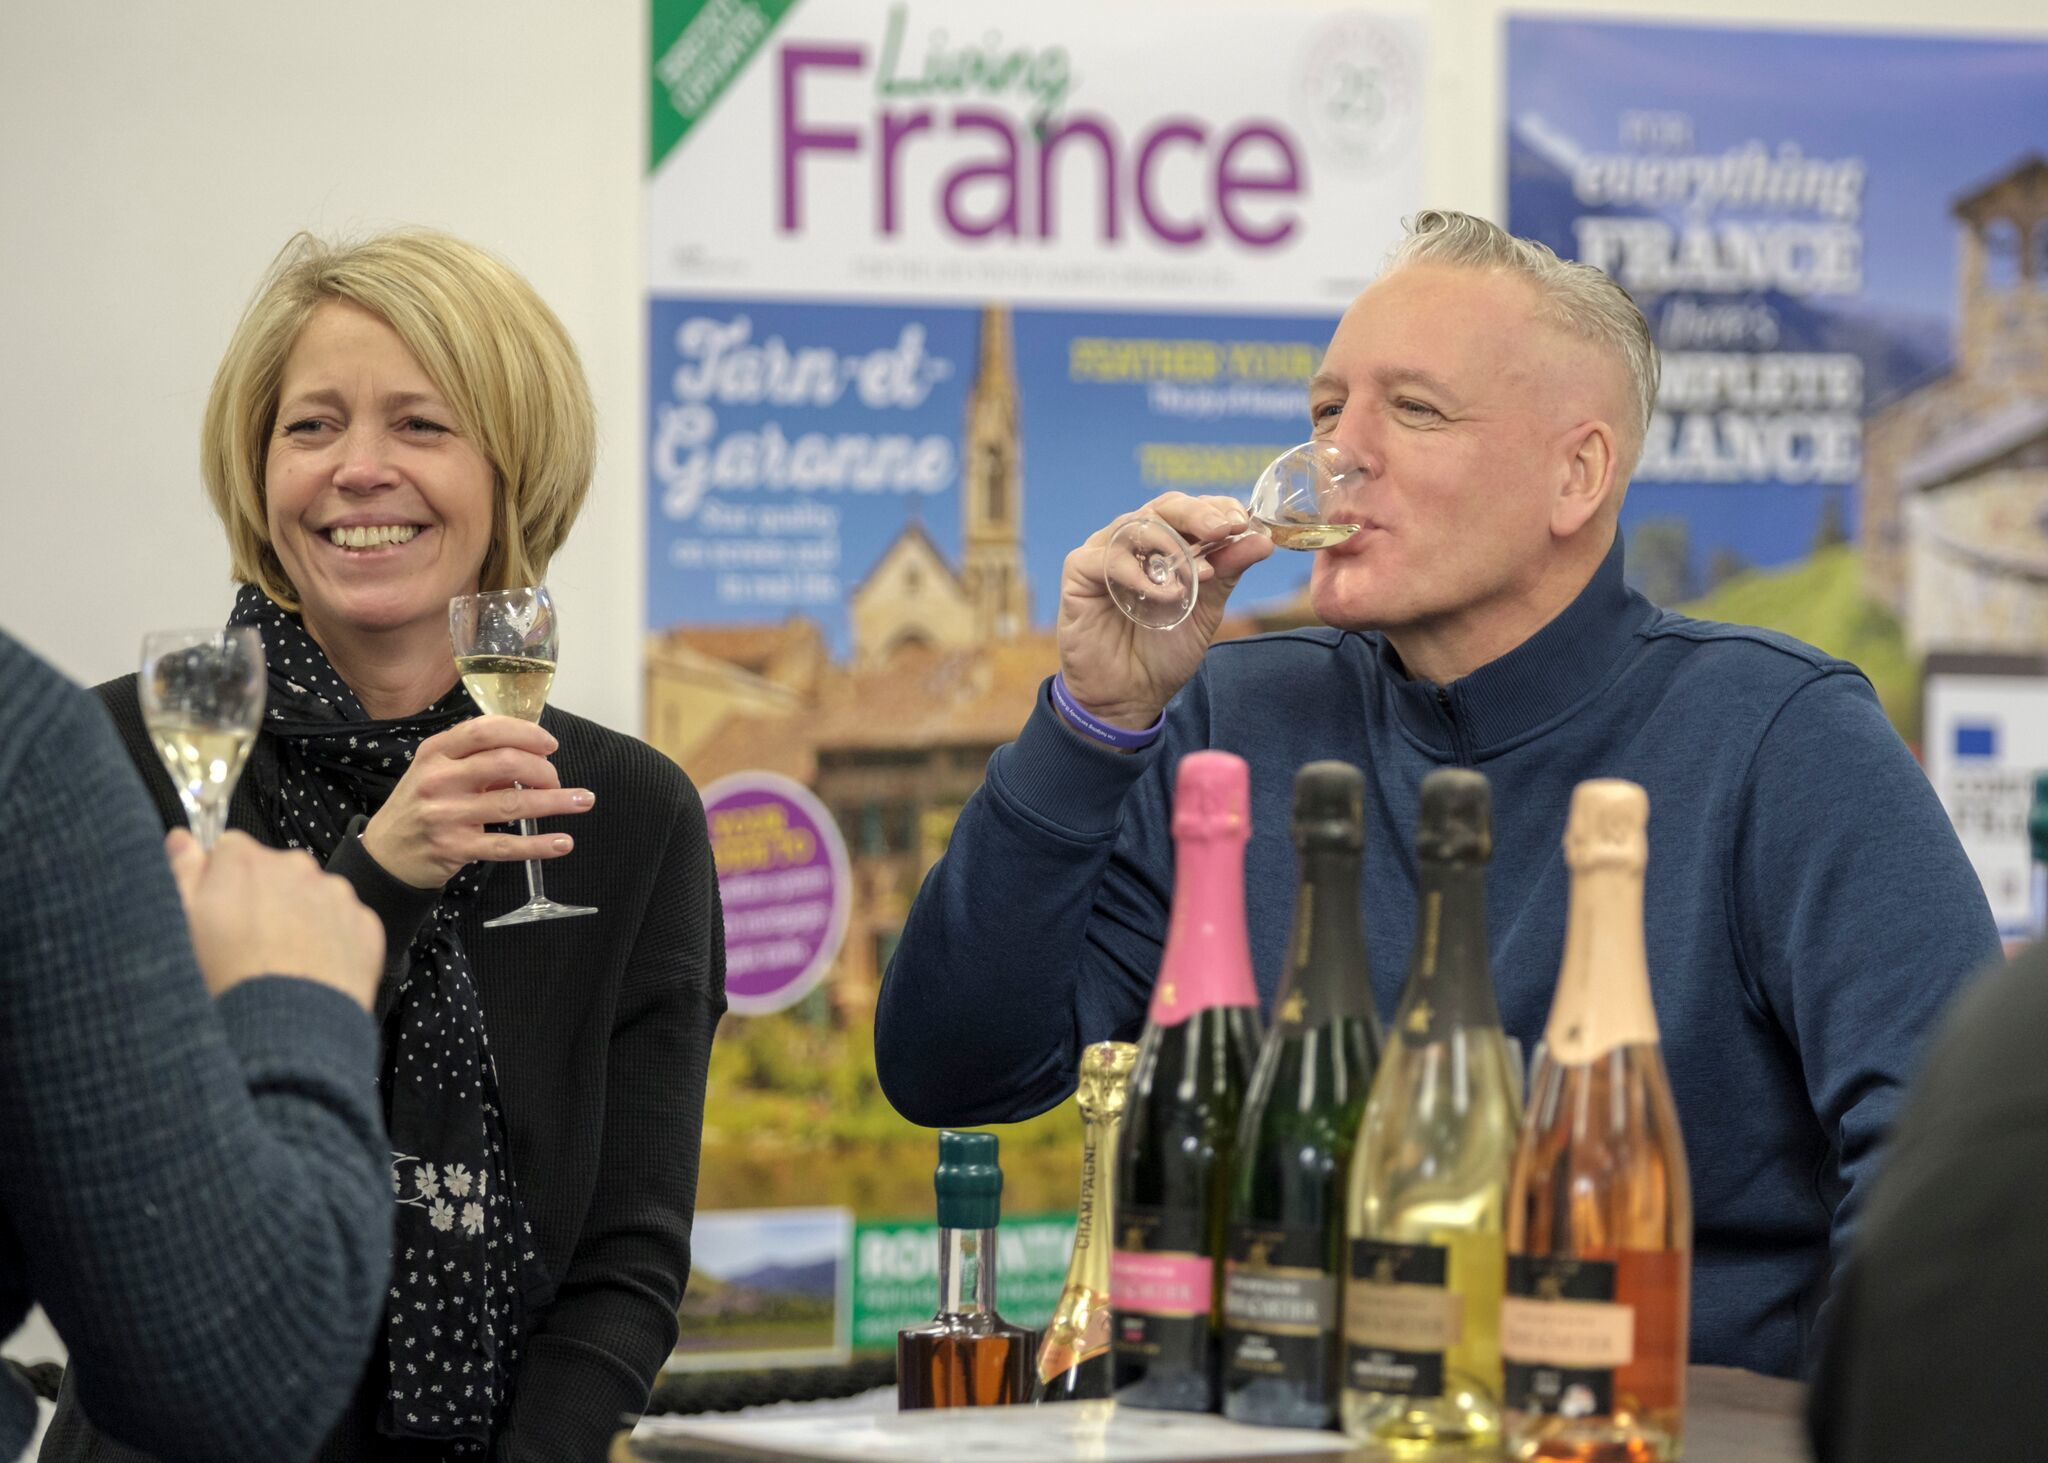 Wine tasting at The France Show